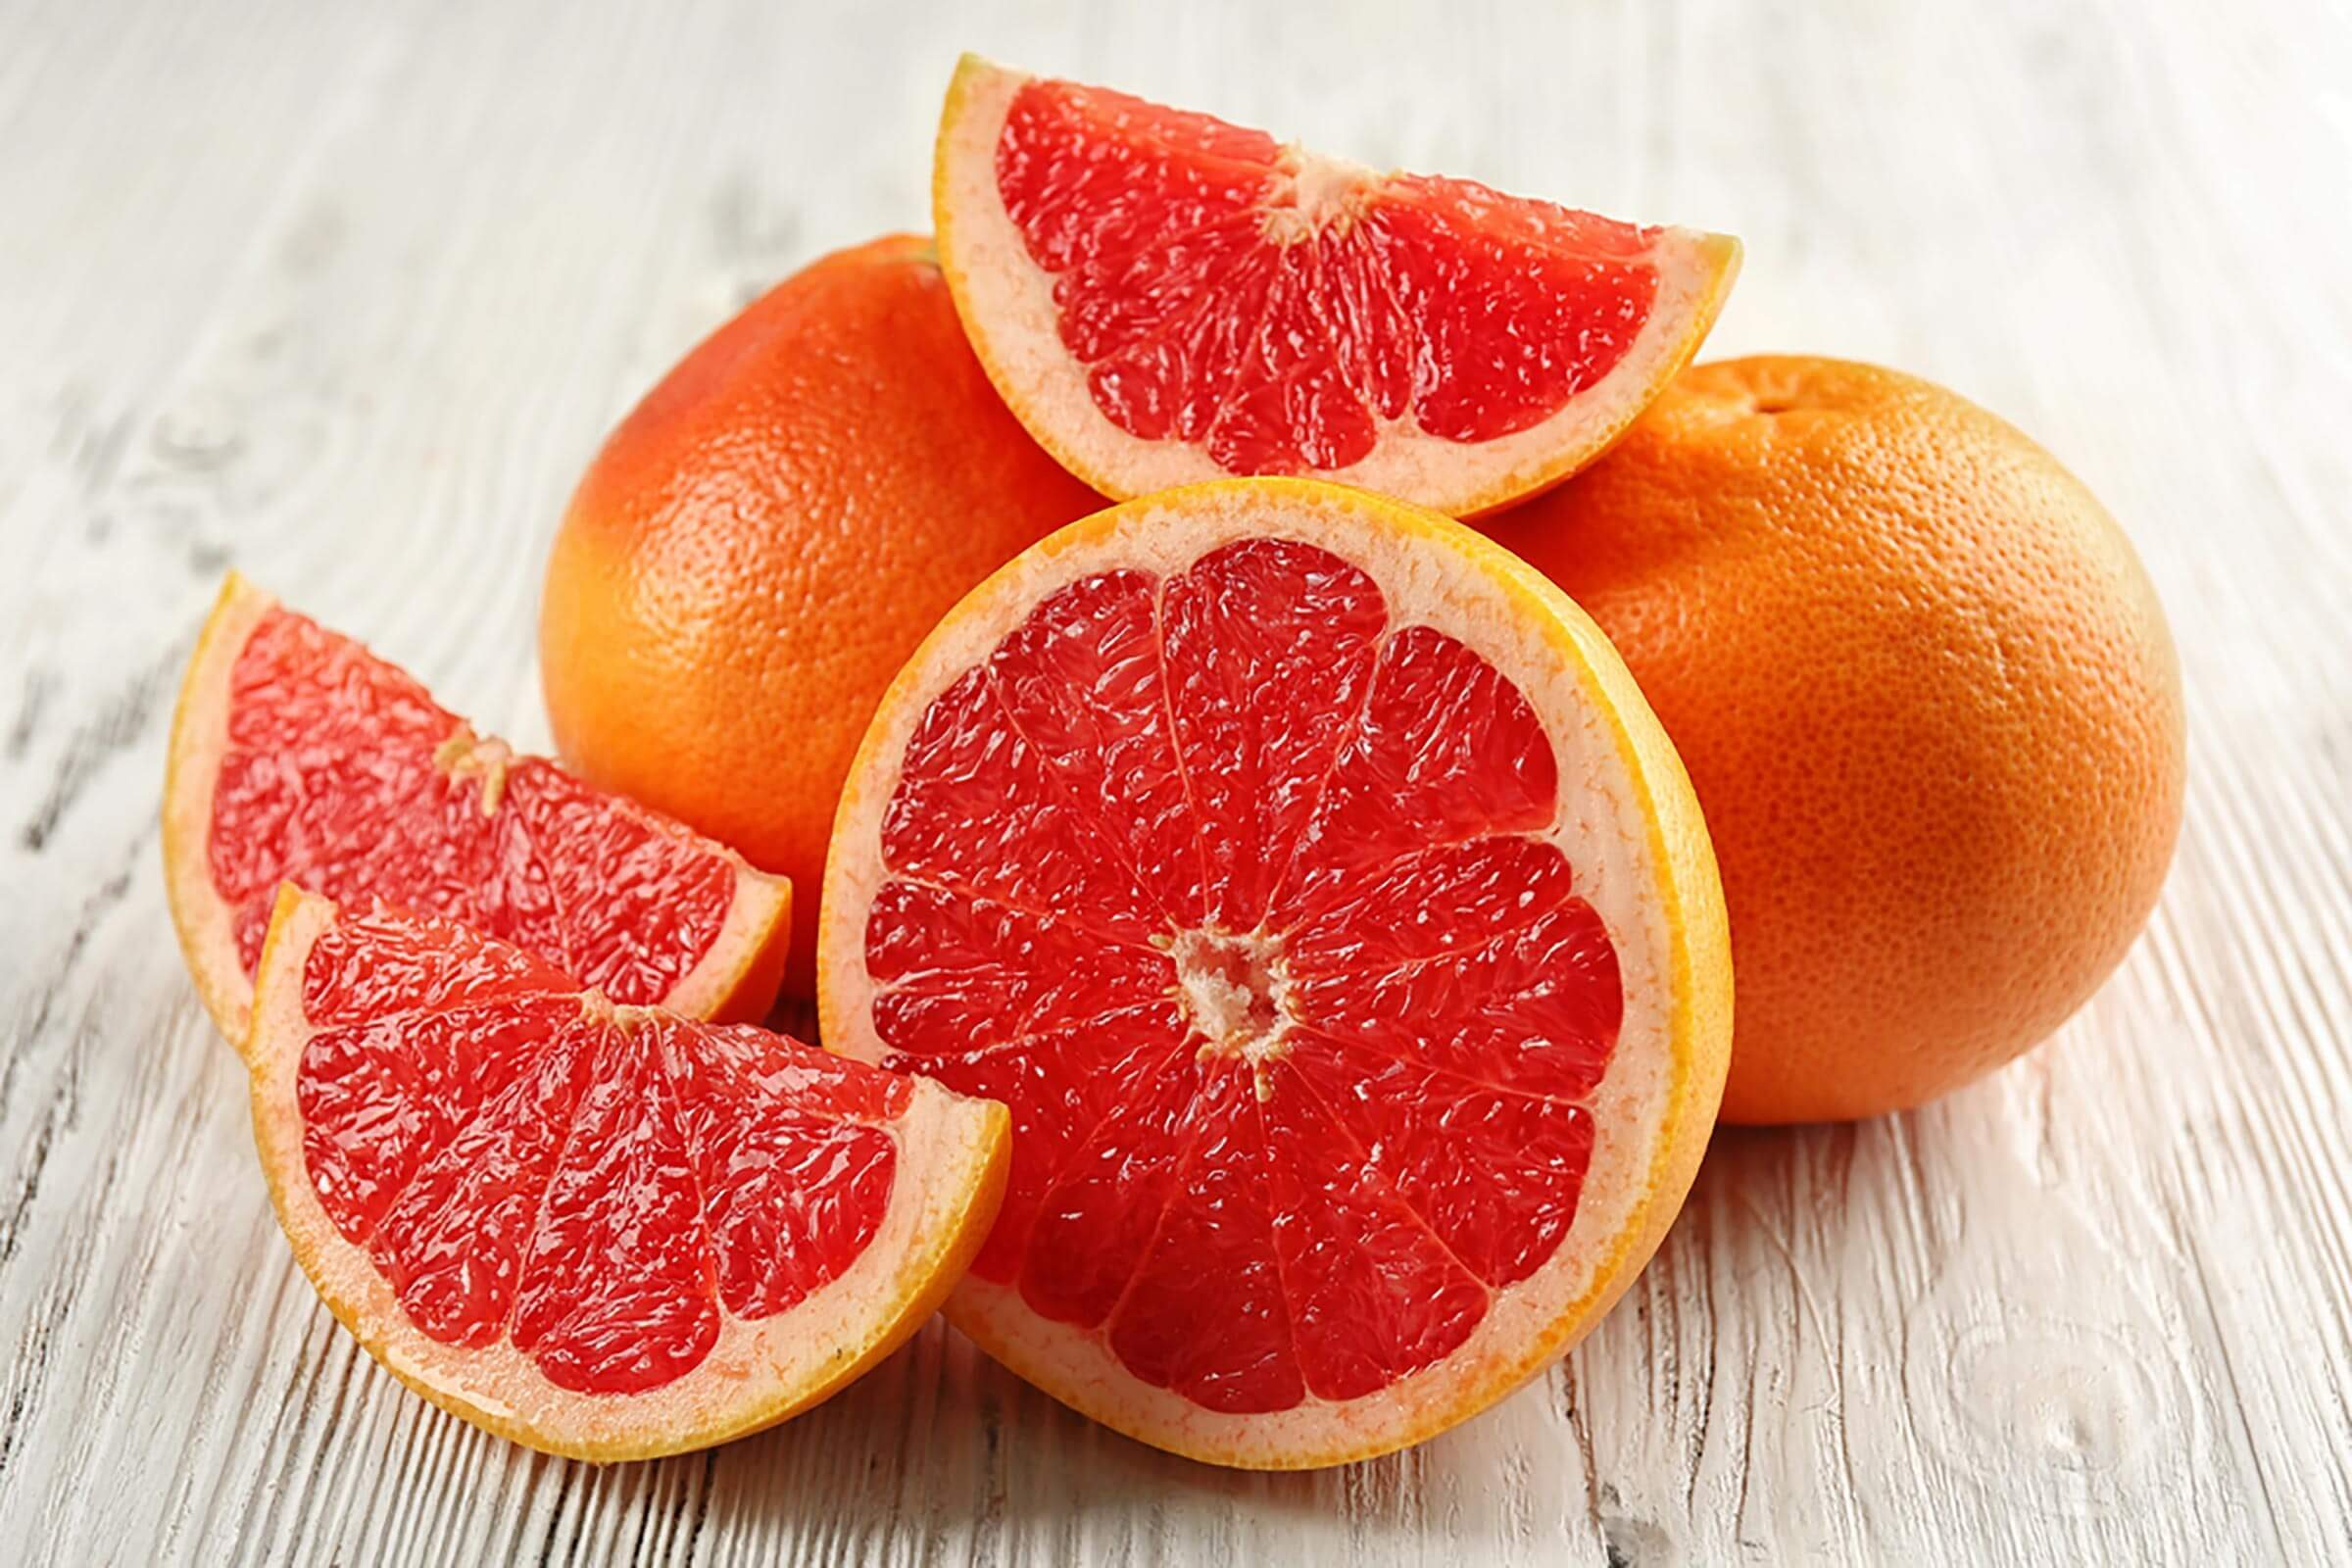 Whole grapefruit, grapefruit slices